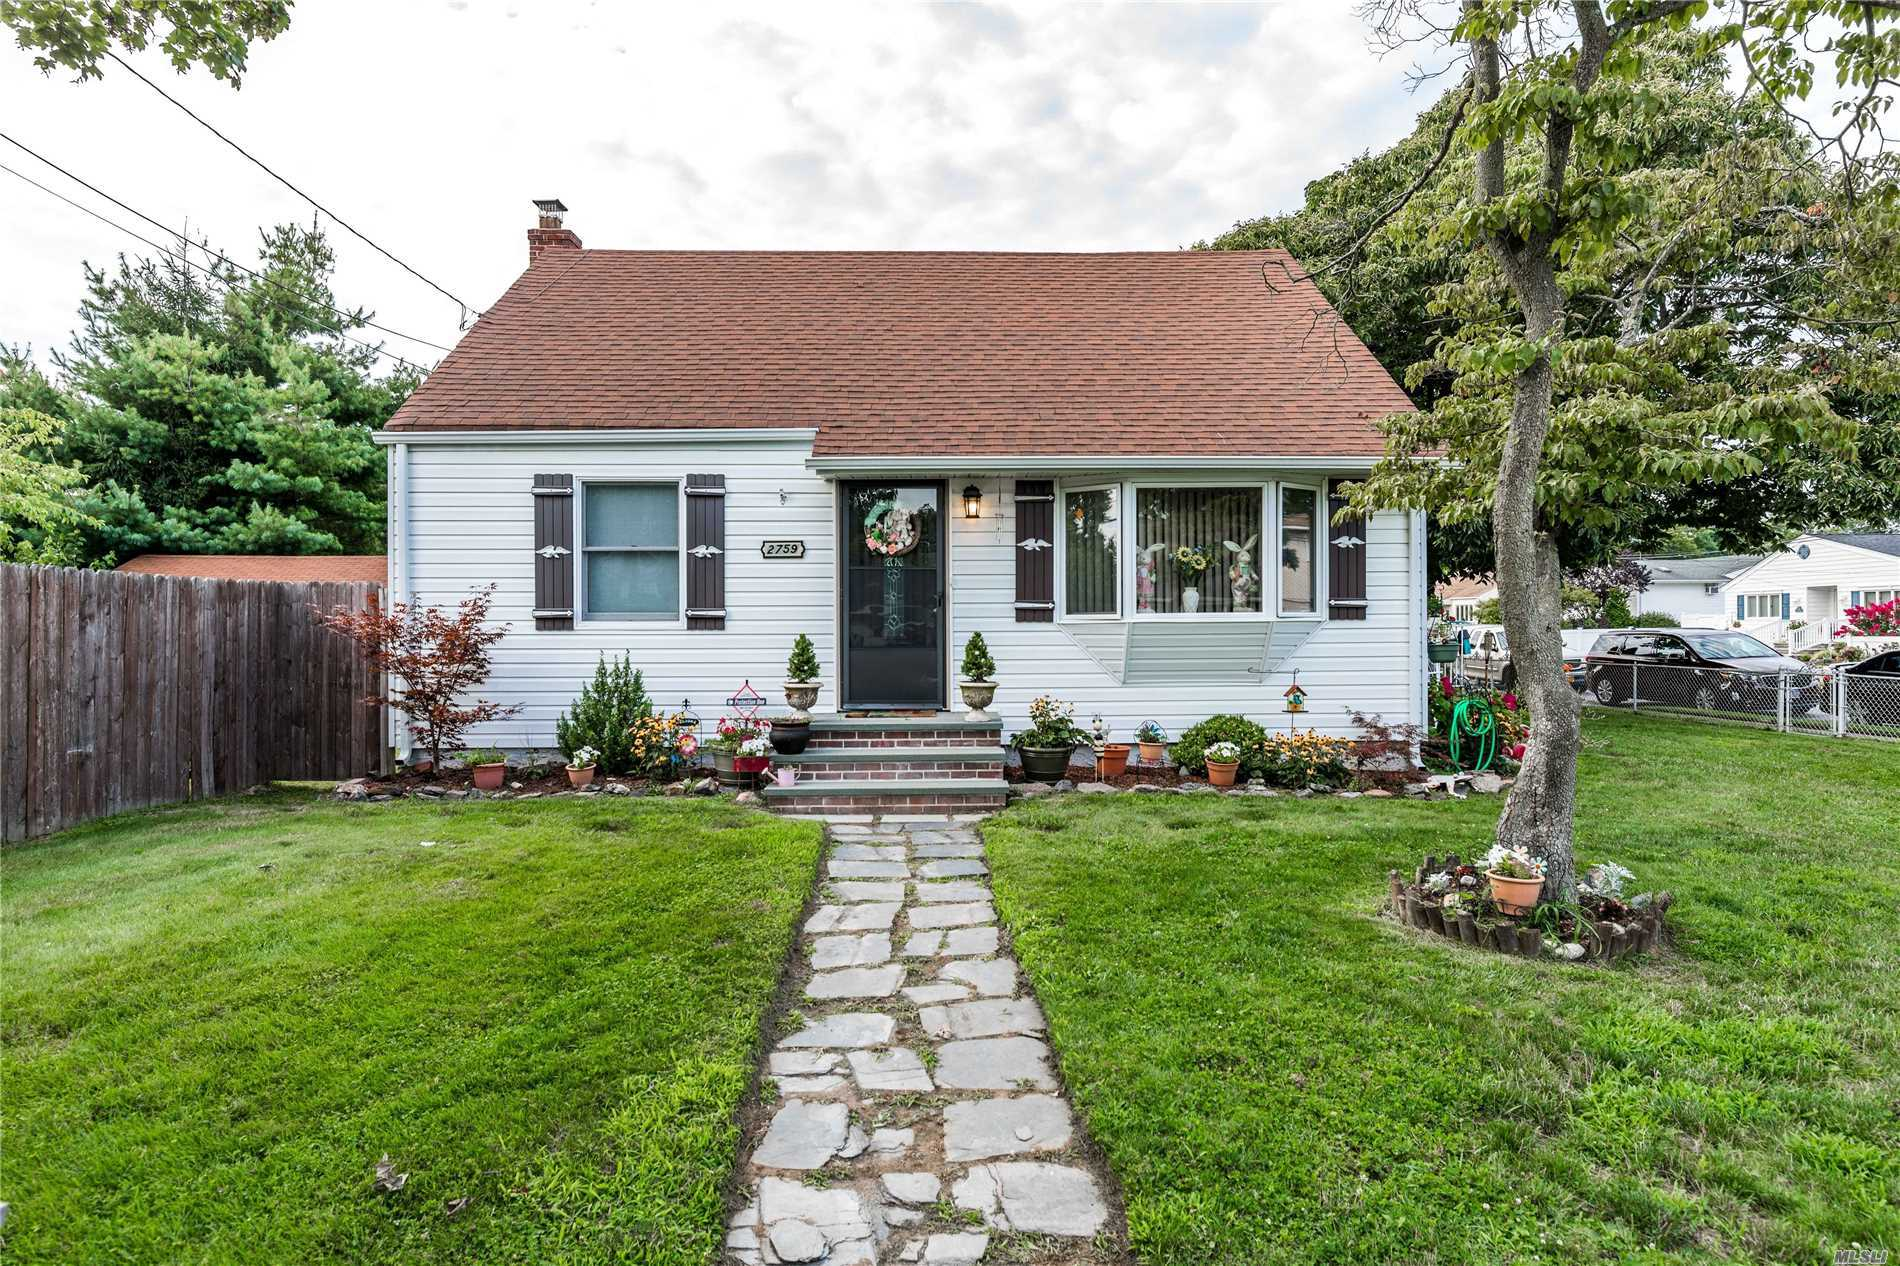 Great Corner Property With Many Updates. Great Family Space Off Kitchen With Access To Yard. New Dishwasher, Washing Machine And Hot Water Heater. Hardwood Floors Thru Out. Plumbing For 2nd Floor Bath In Walls.